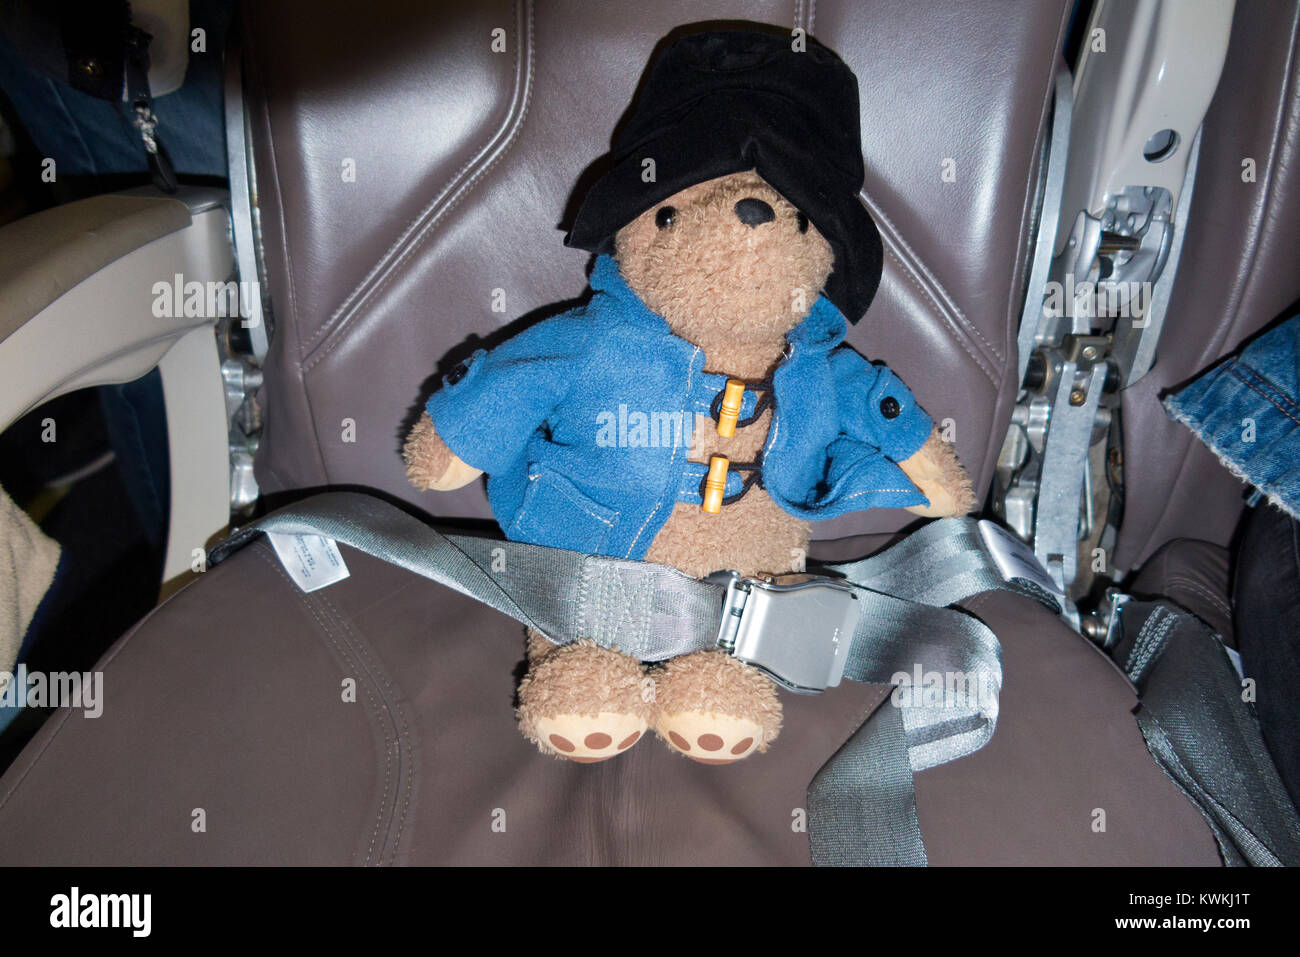 Childs soft toy, Paddington Bear, possibly lost passenger, sitting in an in airplane / air plane / aeroplane seat Stock Photo